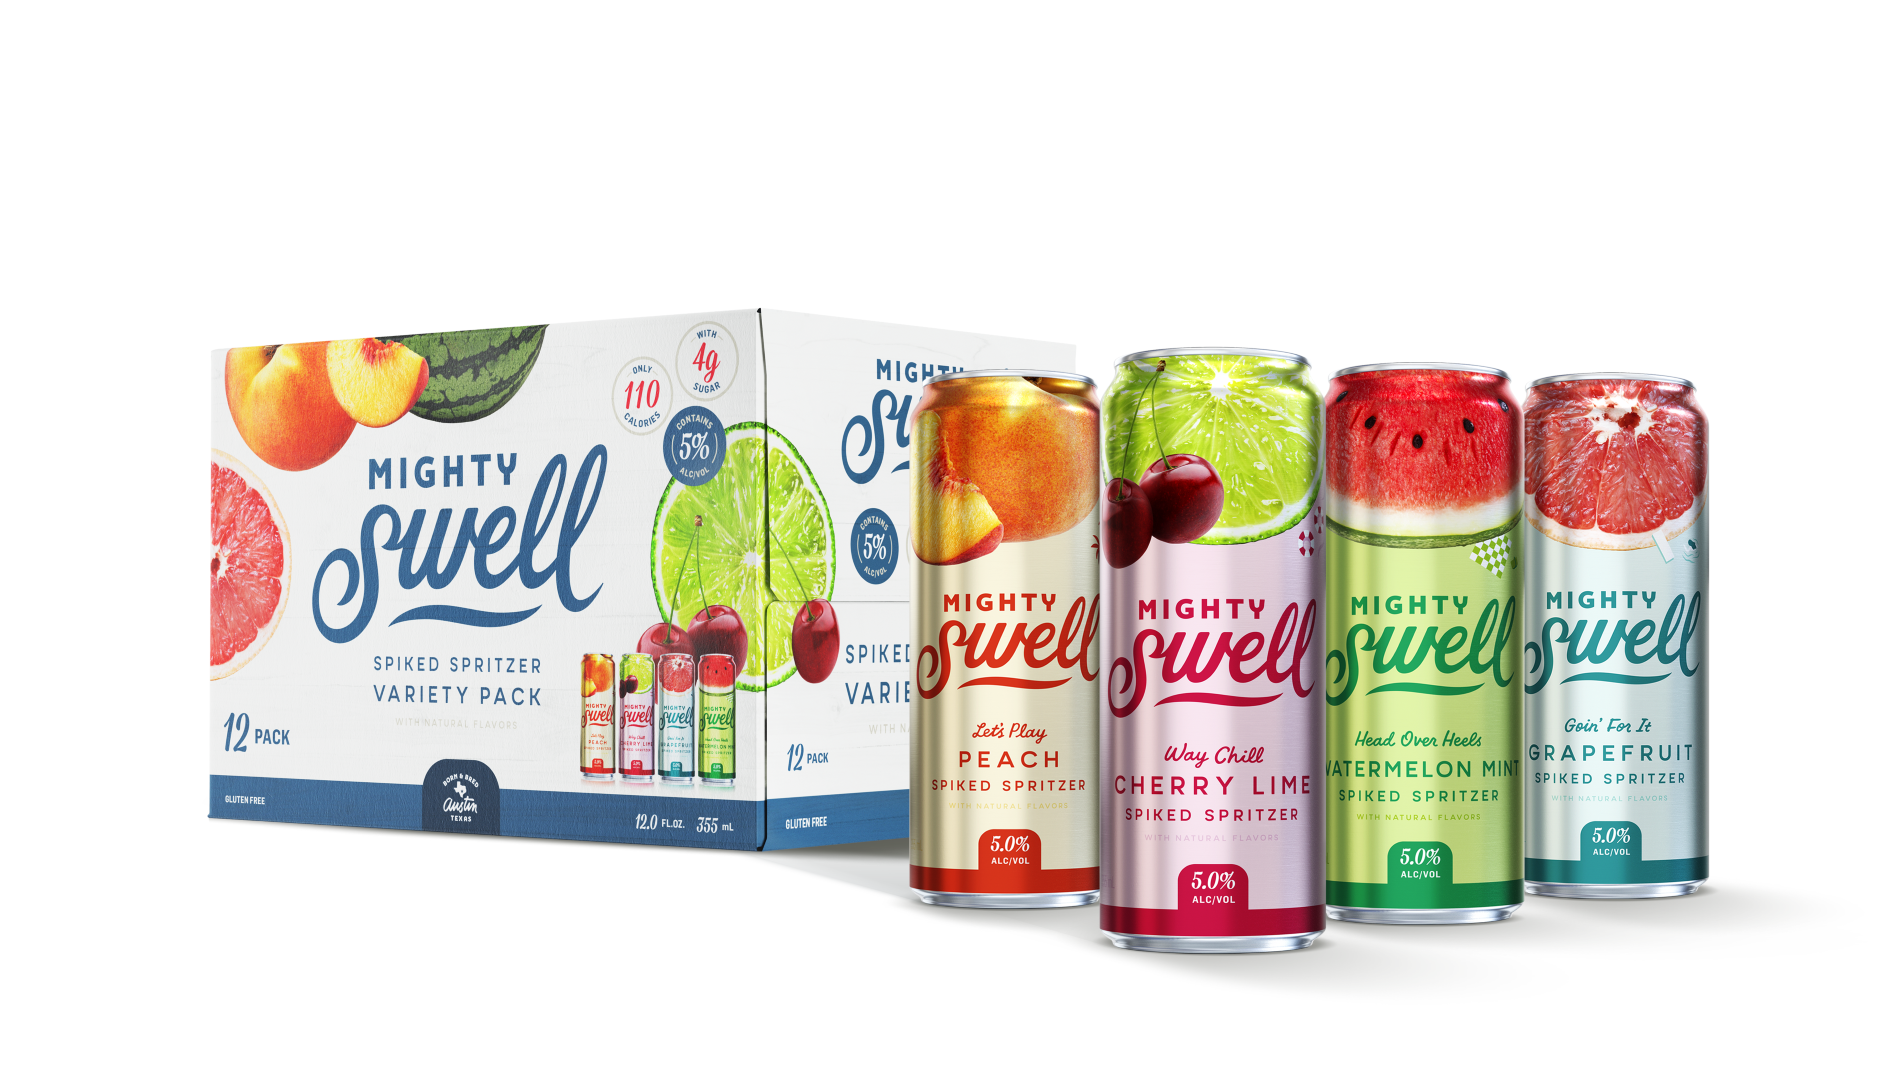 Mighty Swell Cherry Lime Spiked Seltzer